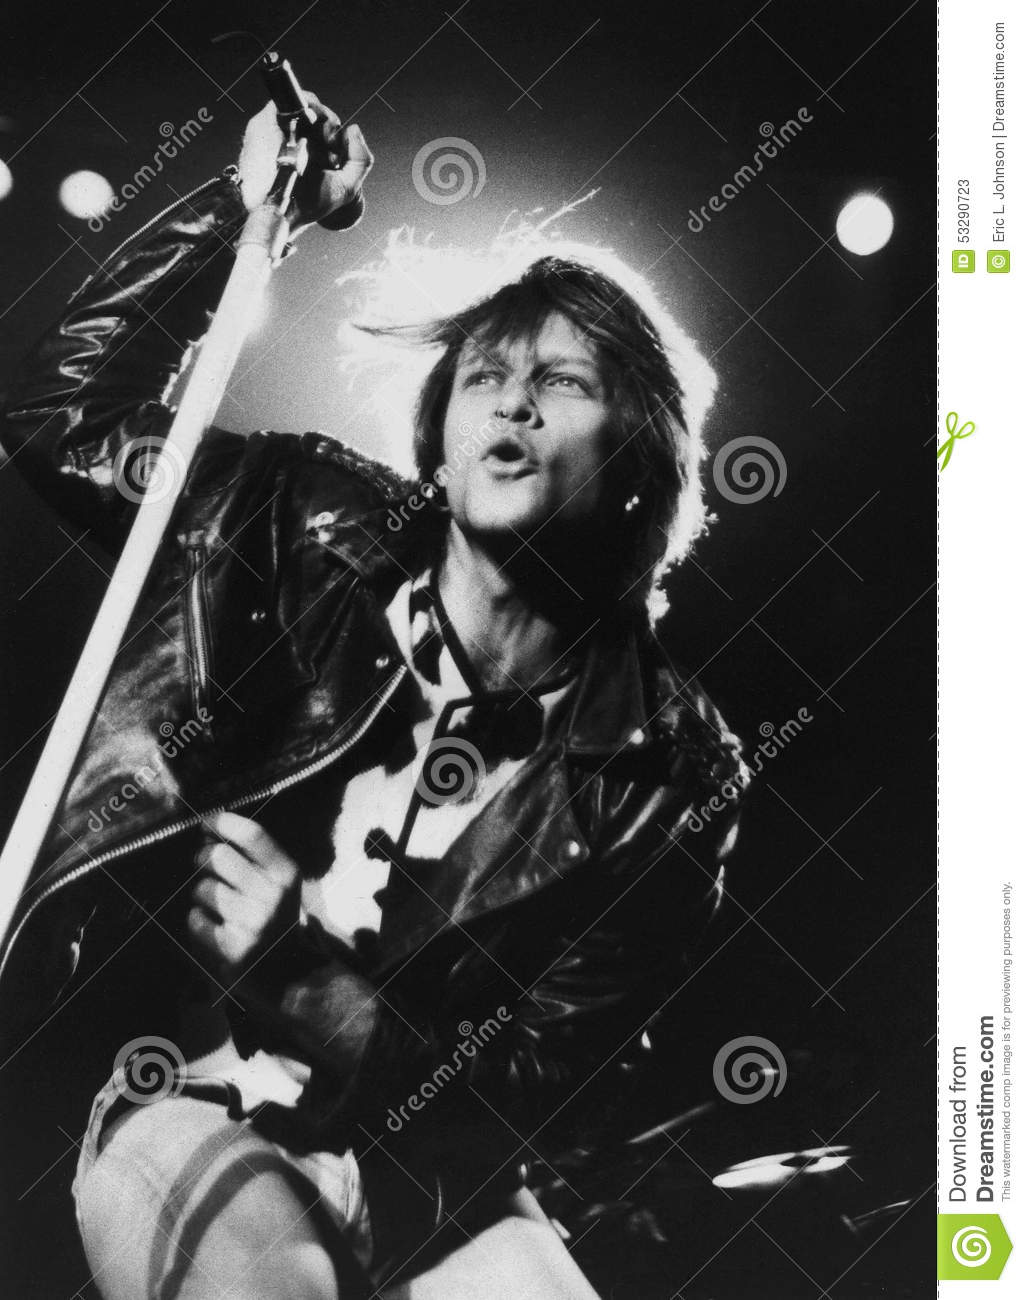 Gif bon jovi jon bon jovi 80s animated gif on gifer by tukree.